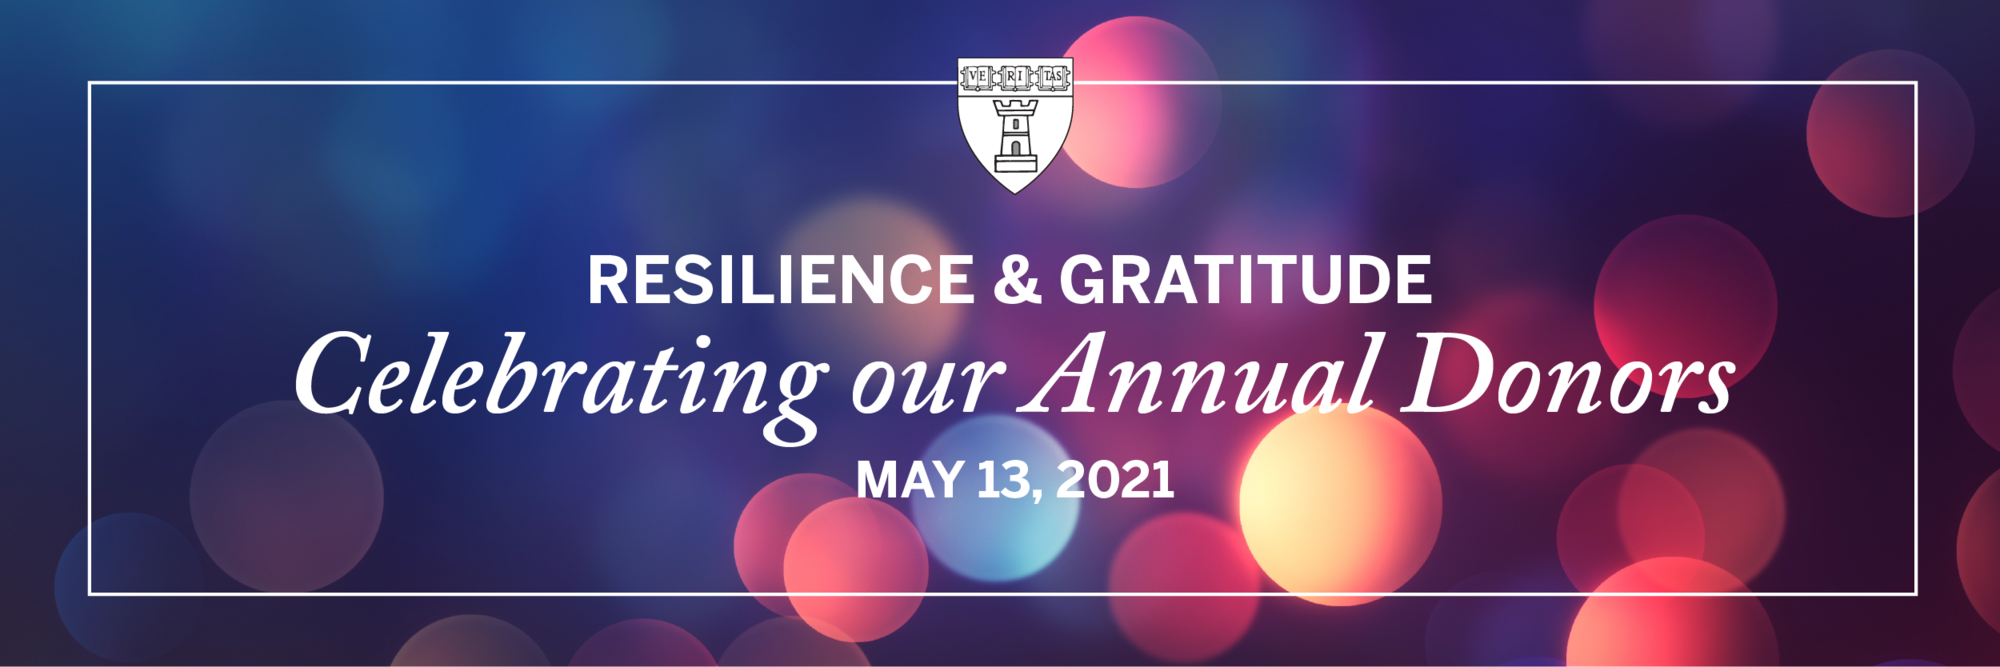 Resilience & Gratitue: Celebrating Our Annual Donors